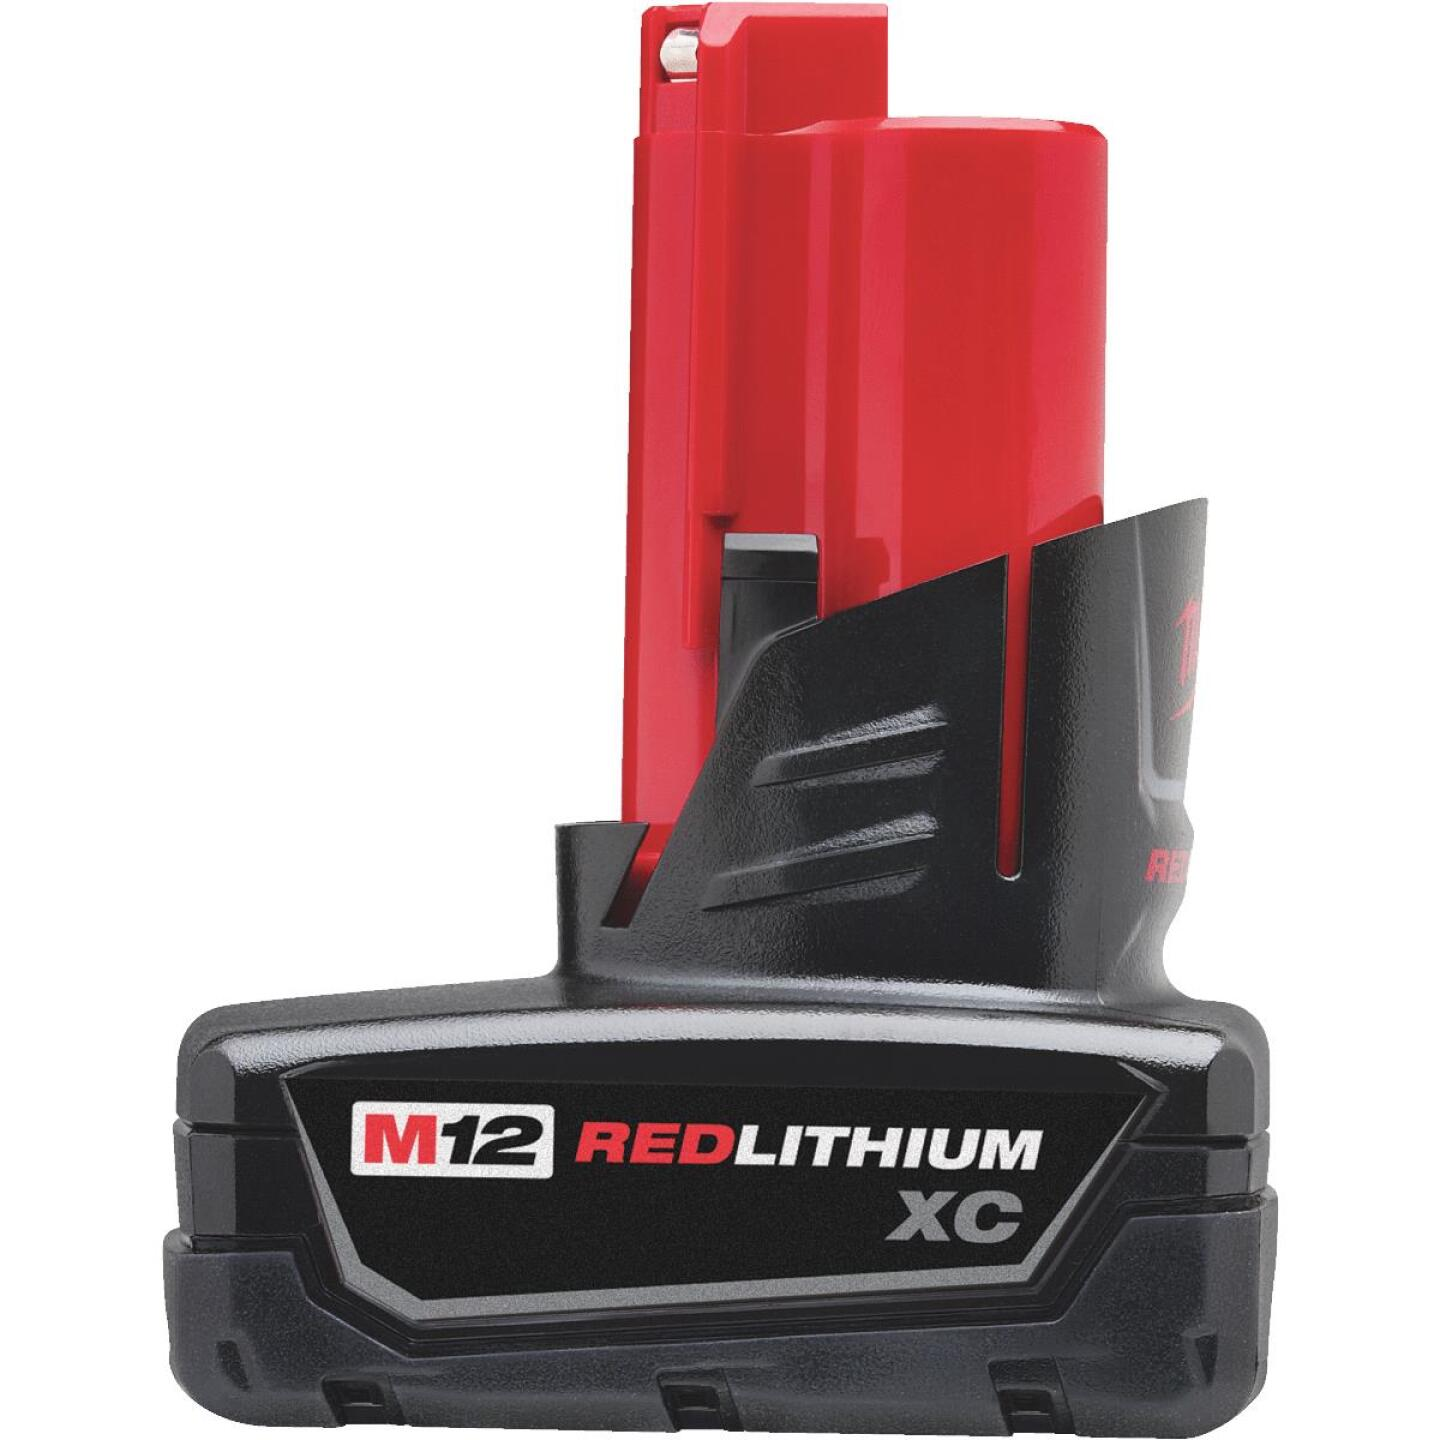 Milwaukee M12 REDLITHIUM XC 12 Volt Lithium-Ion 3.0 Ah Extended Capacity Tool Battery Image 1